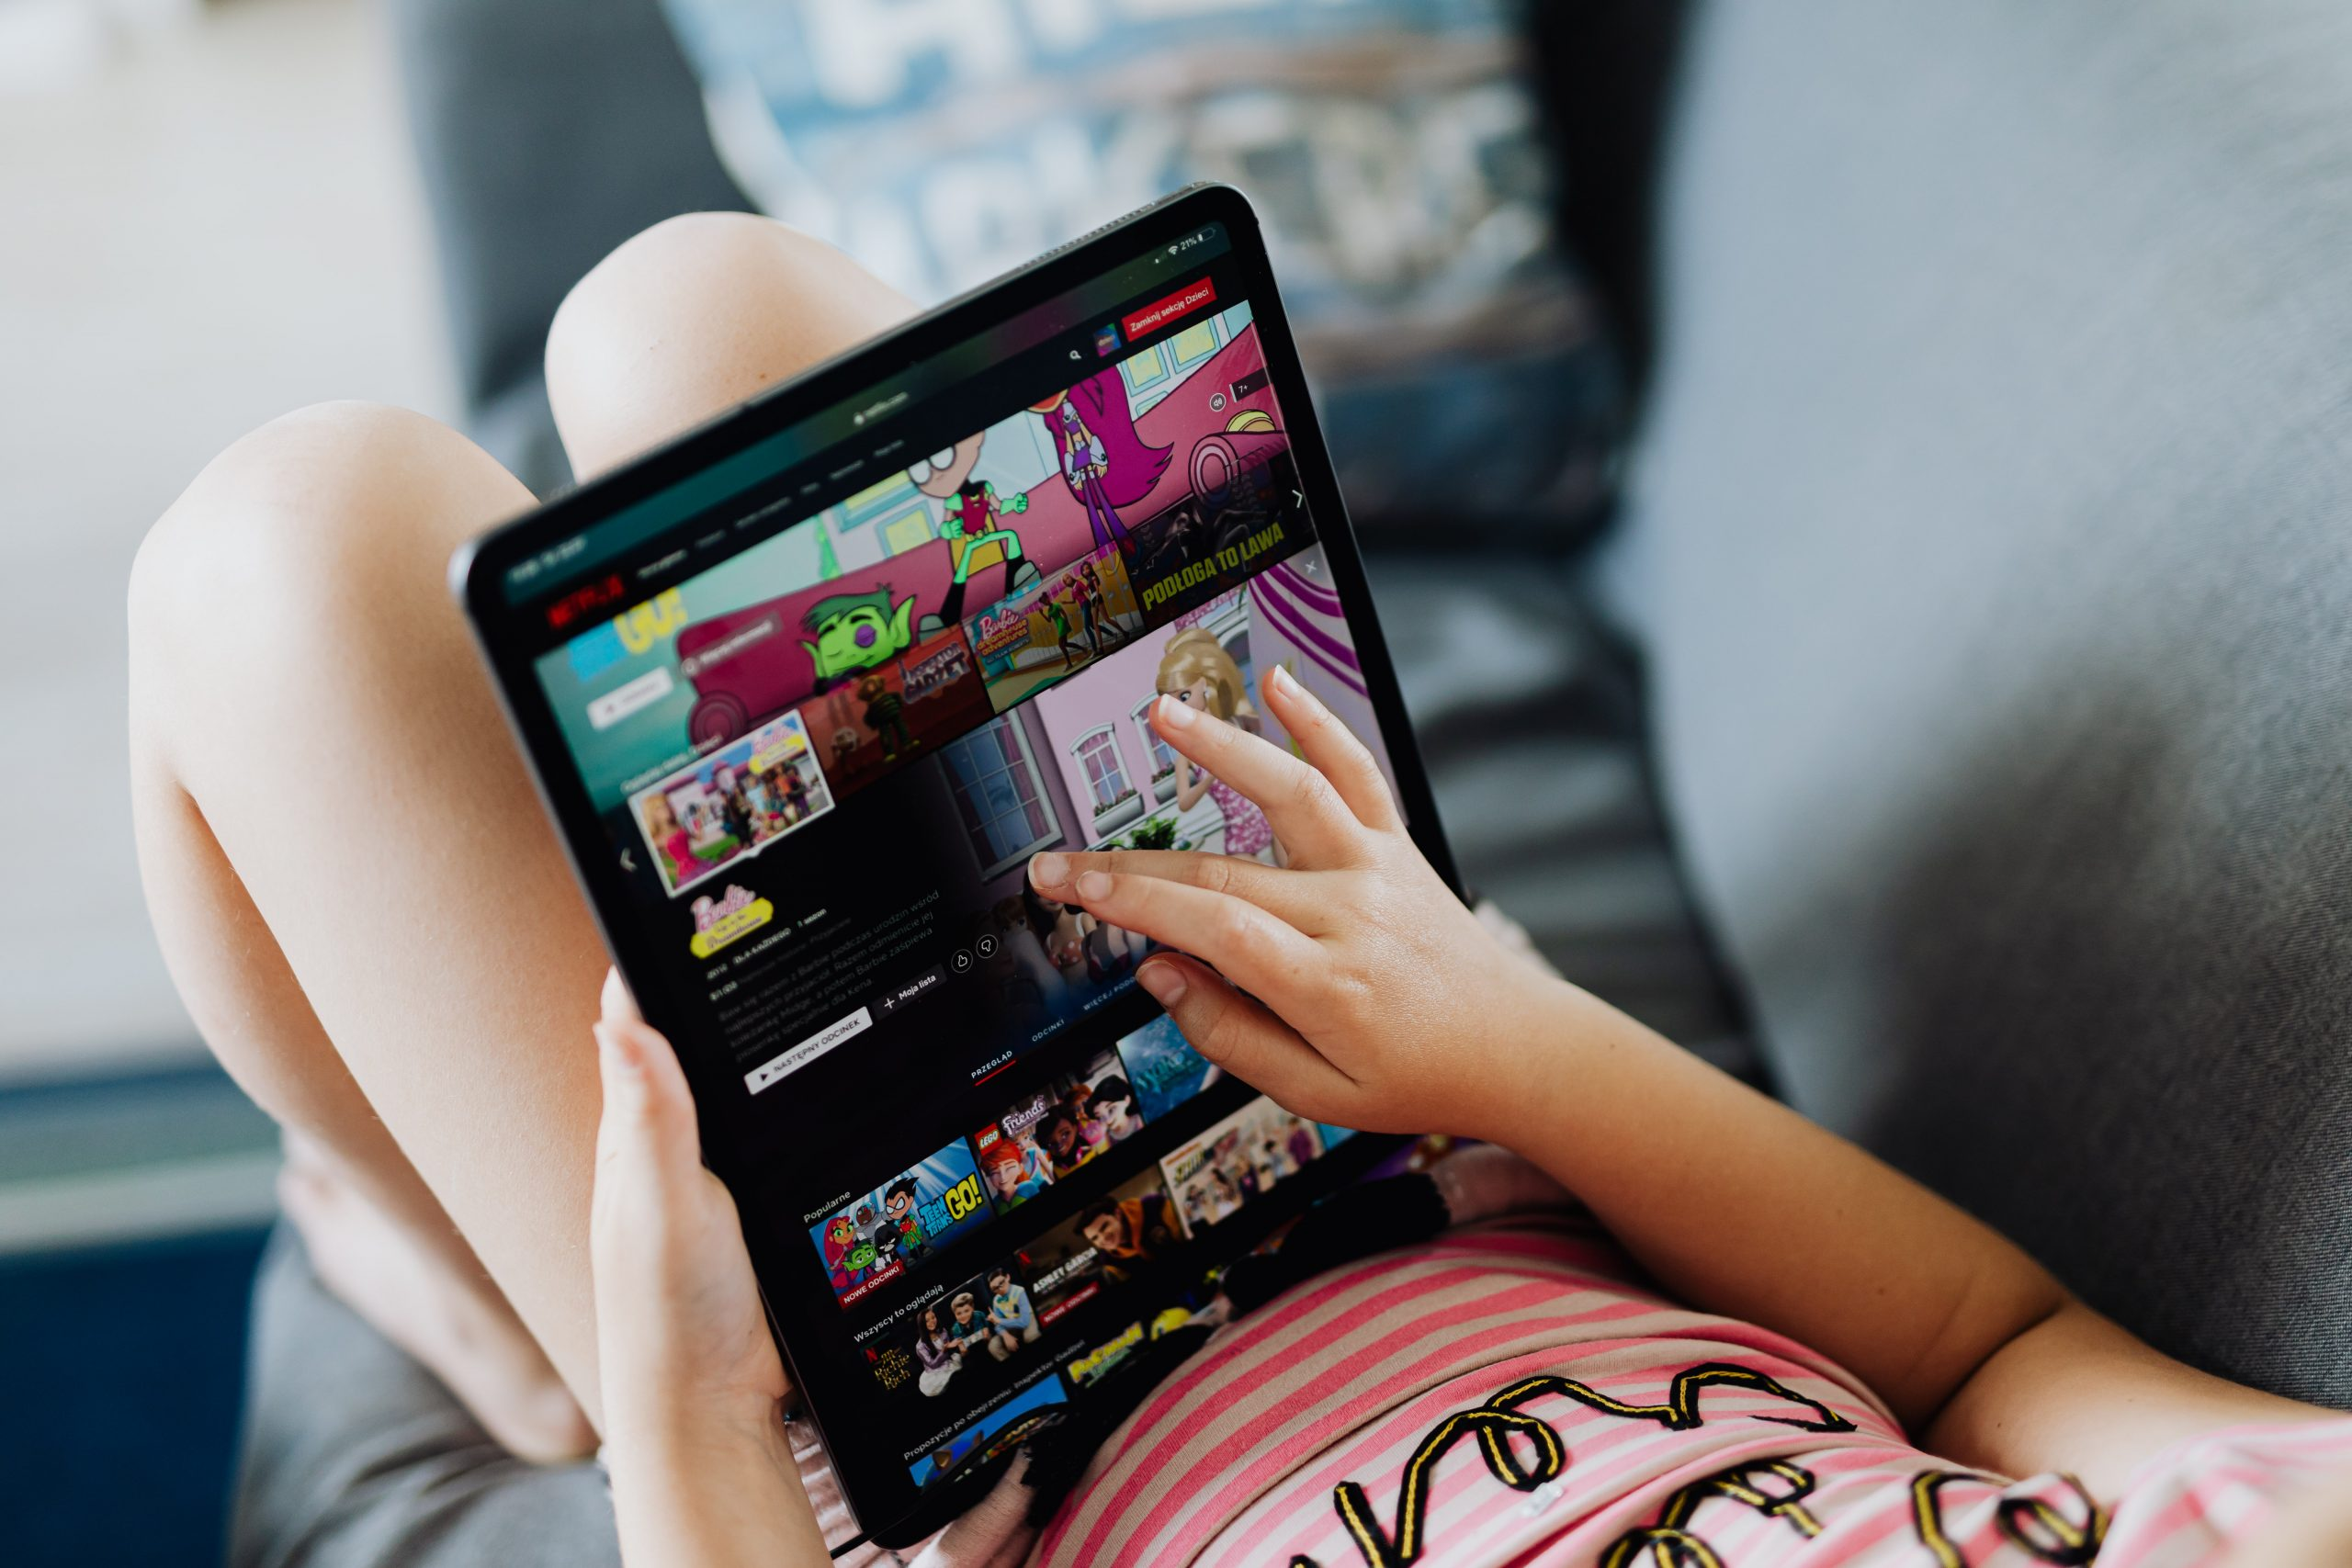 Children's Content Overload: Enjoying the benefits, managing the problems